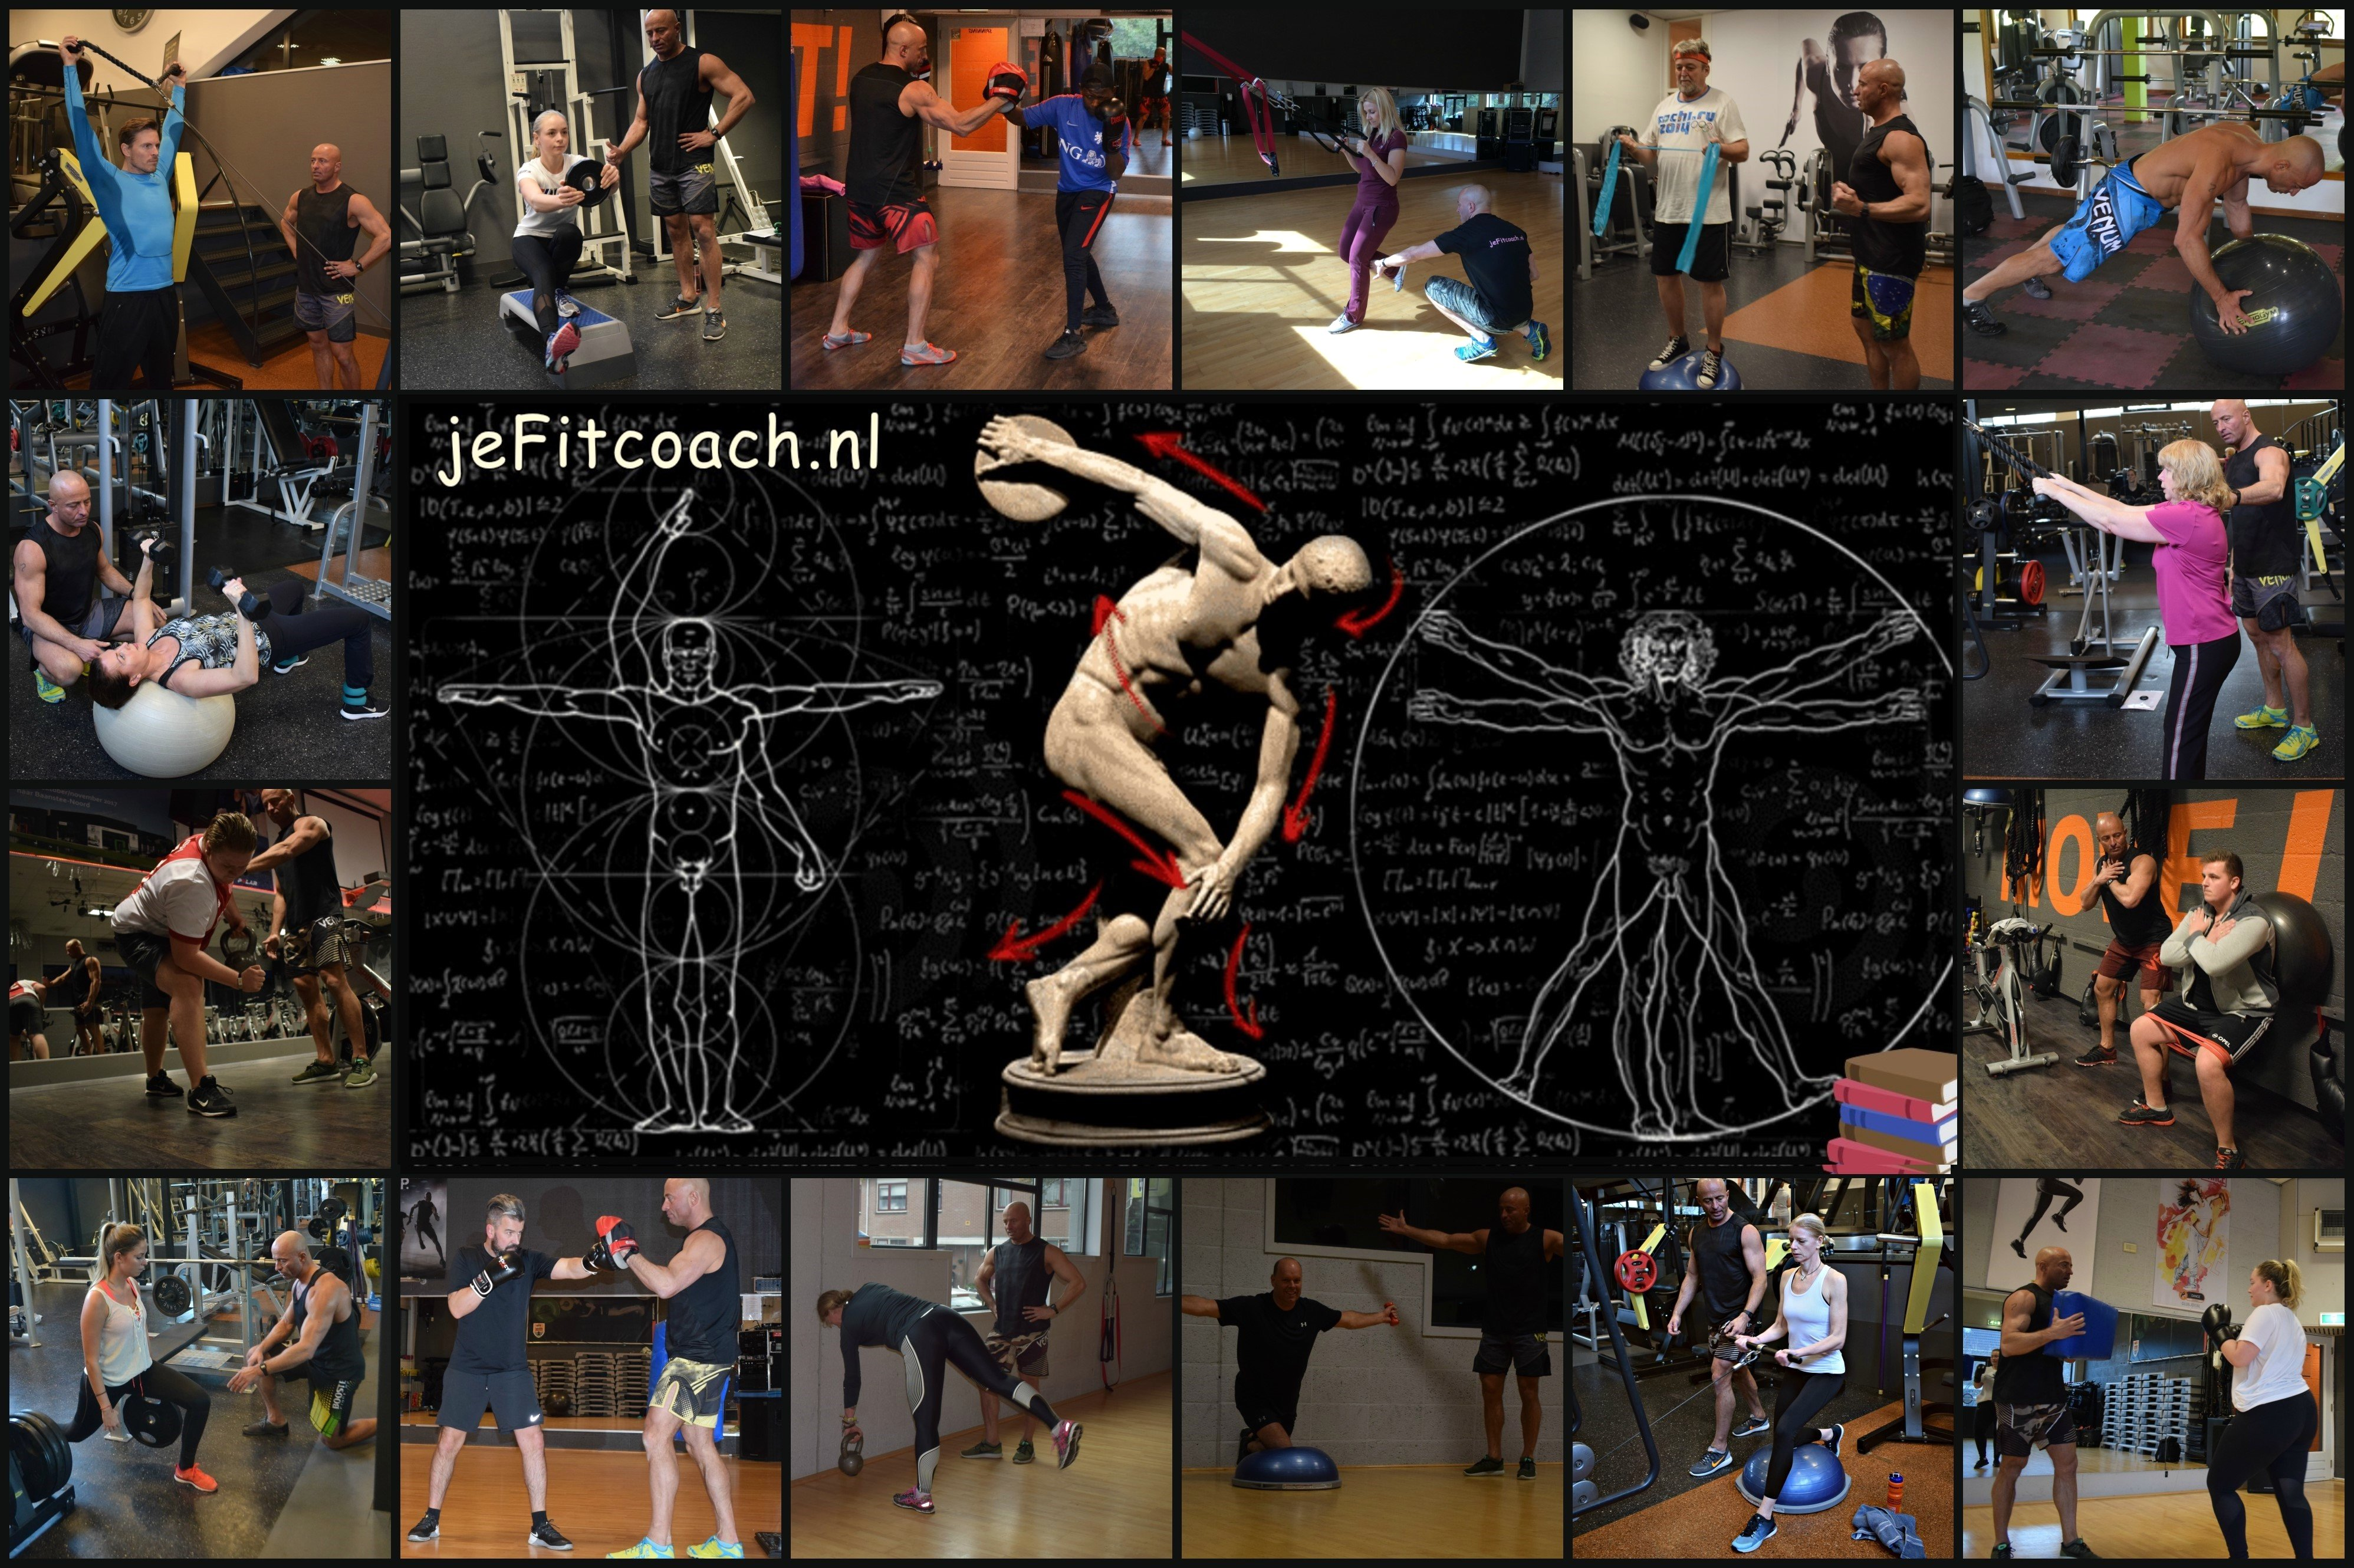 PERSONAL TRAINER EN DIETIST IN PURMEREND | JEFITCOACH RAY - www.jefitcoach.nl